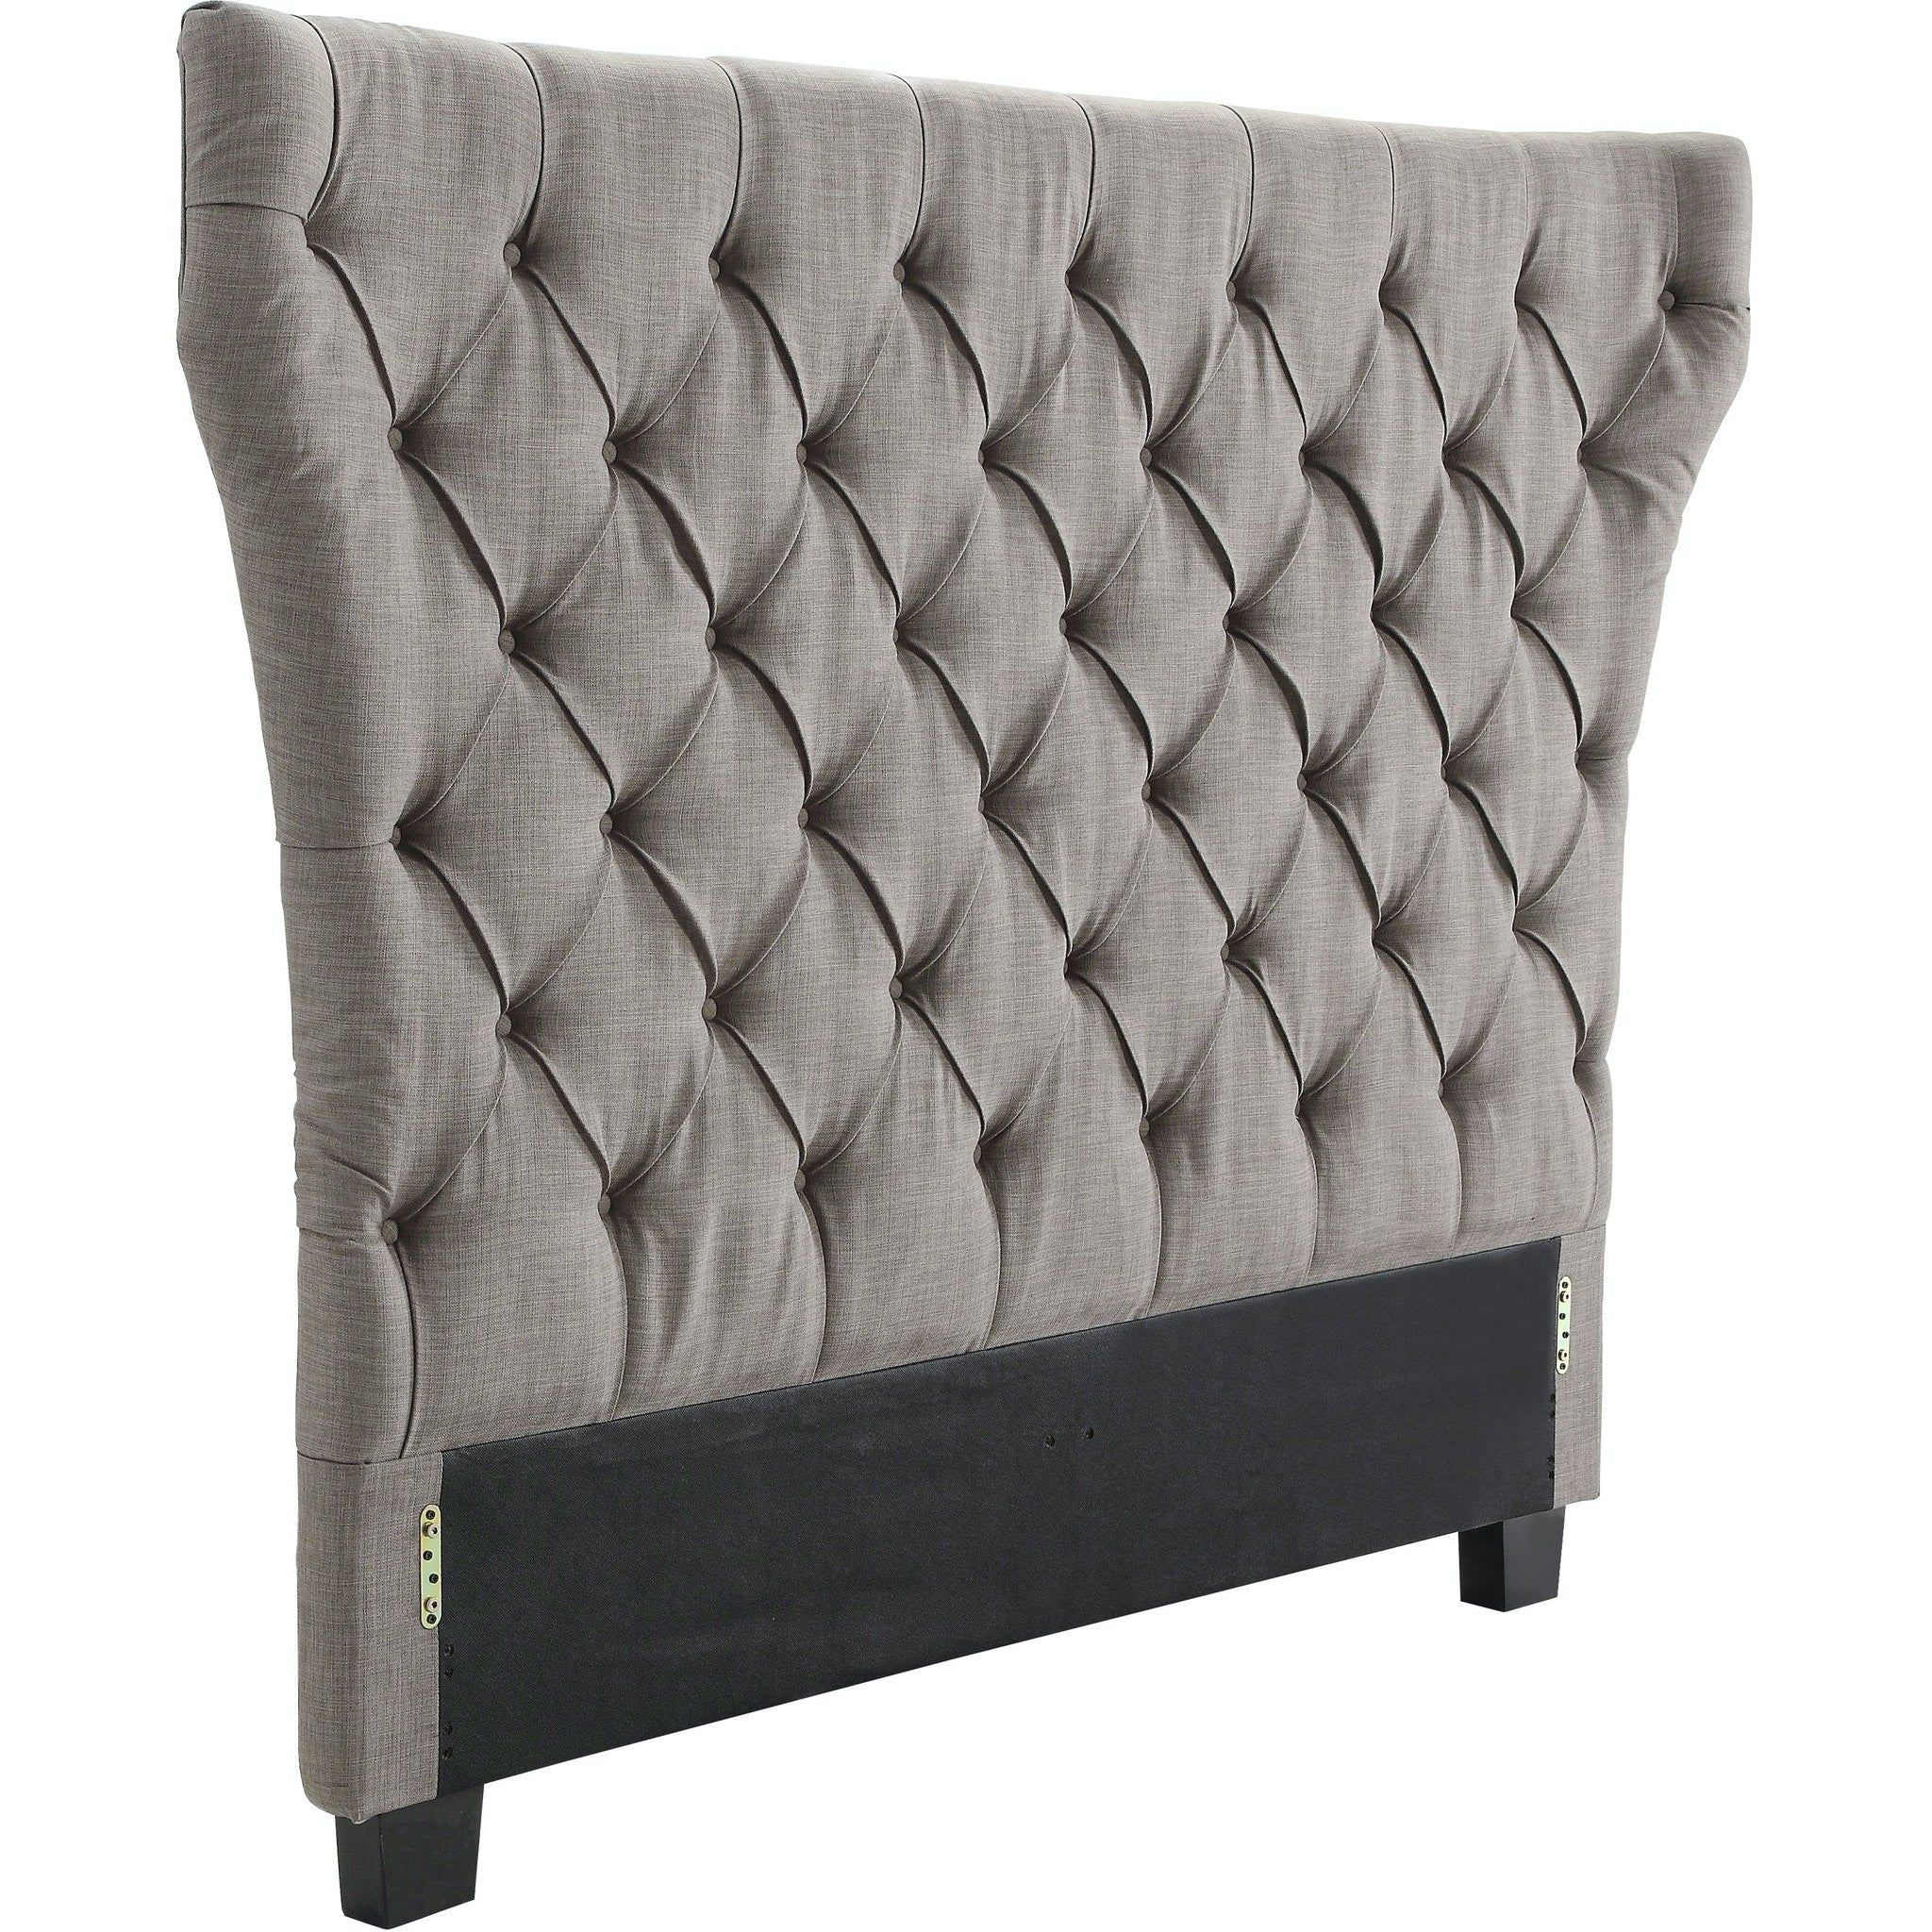 Melina Queen-Size Upholstered Headboard in Dolphin Linen